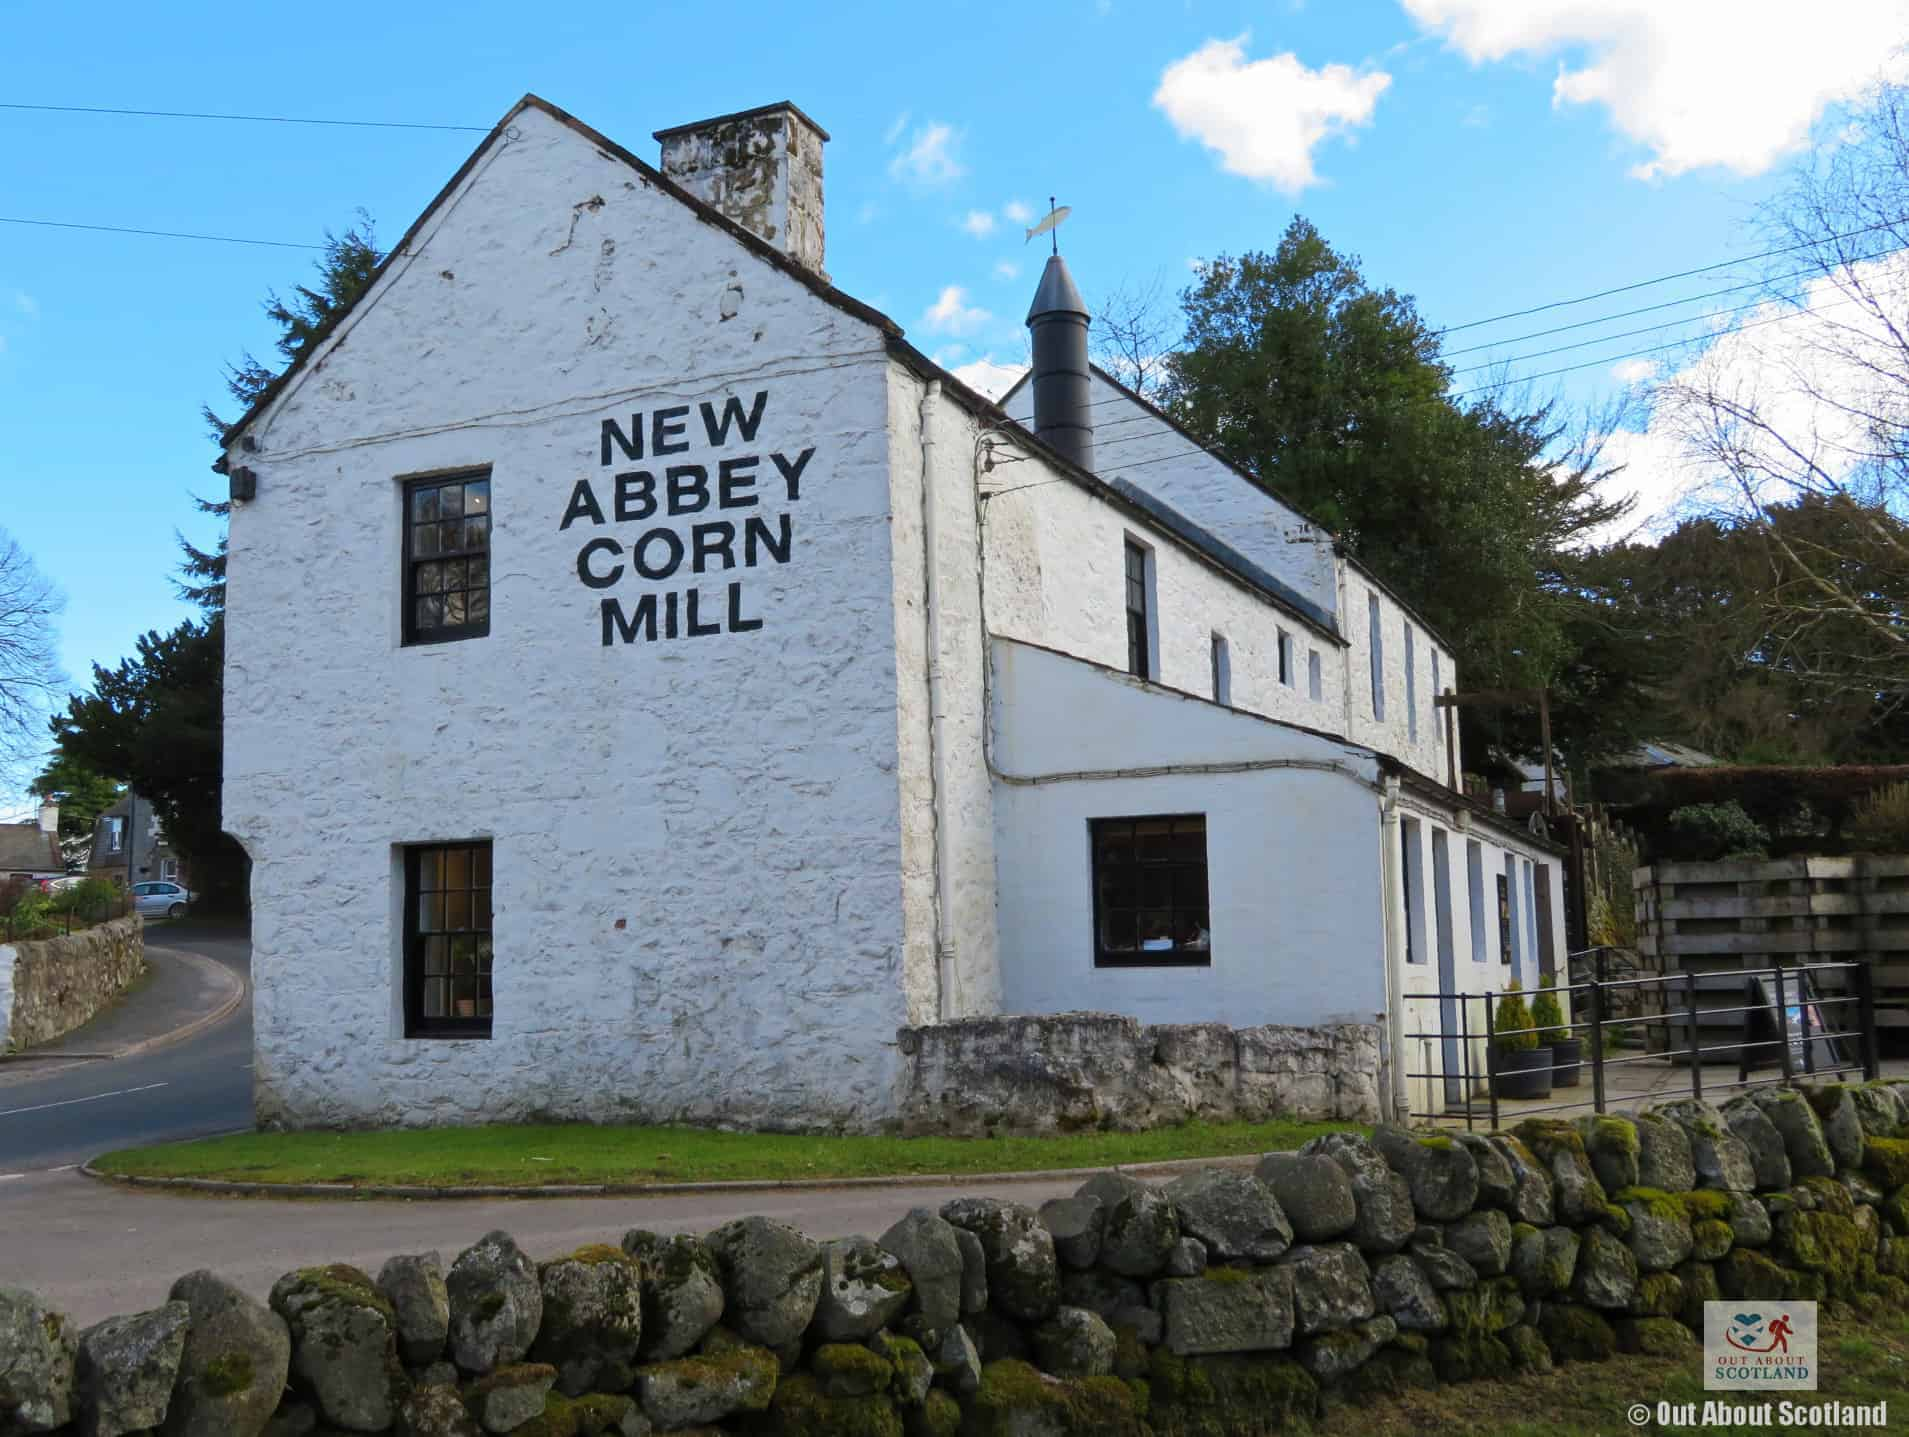 New Abbey Corn Mill from the picnic area